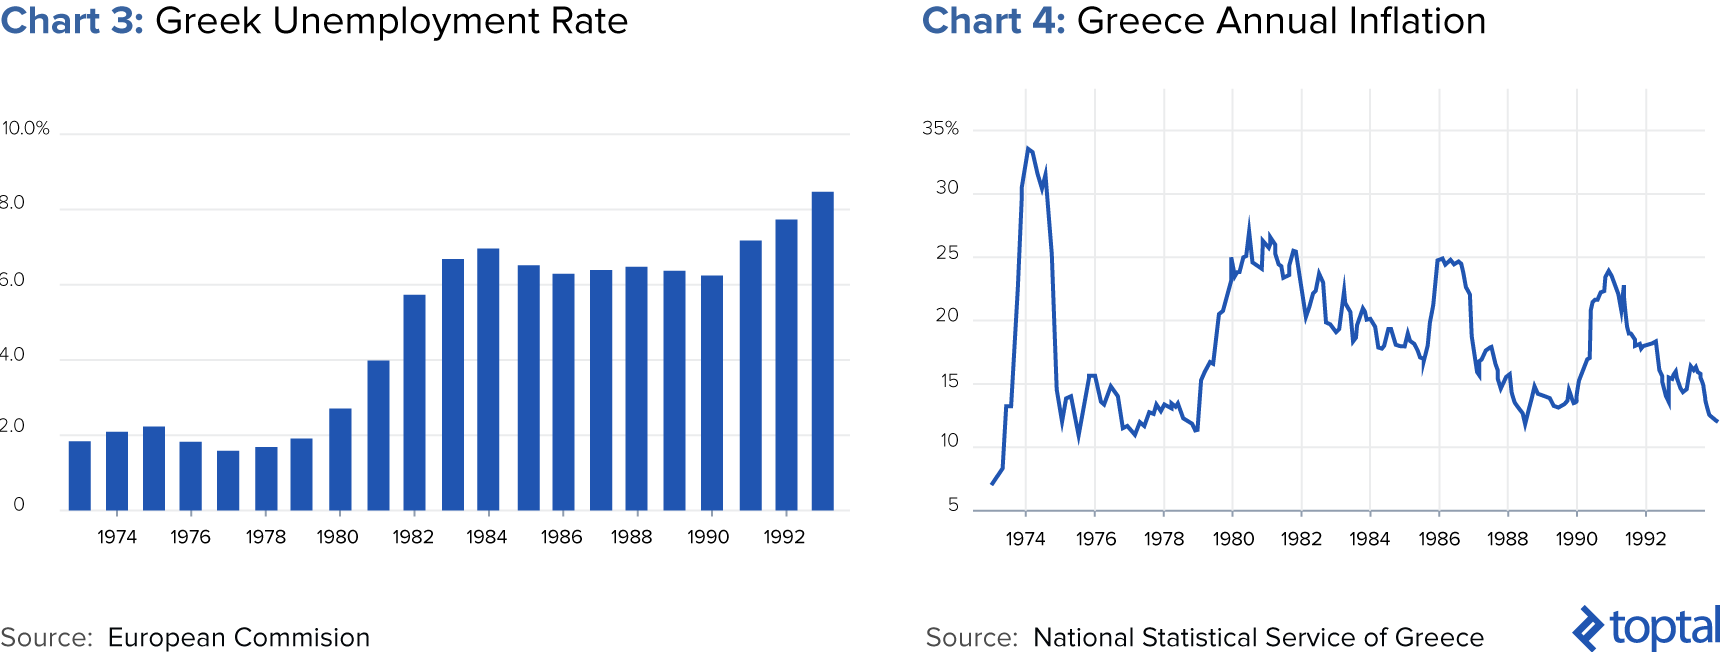 Chart 3: Greek Unemployment Rate; and Chart 4: Greece Annual Inflation